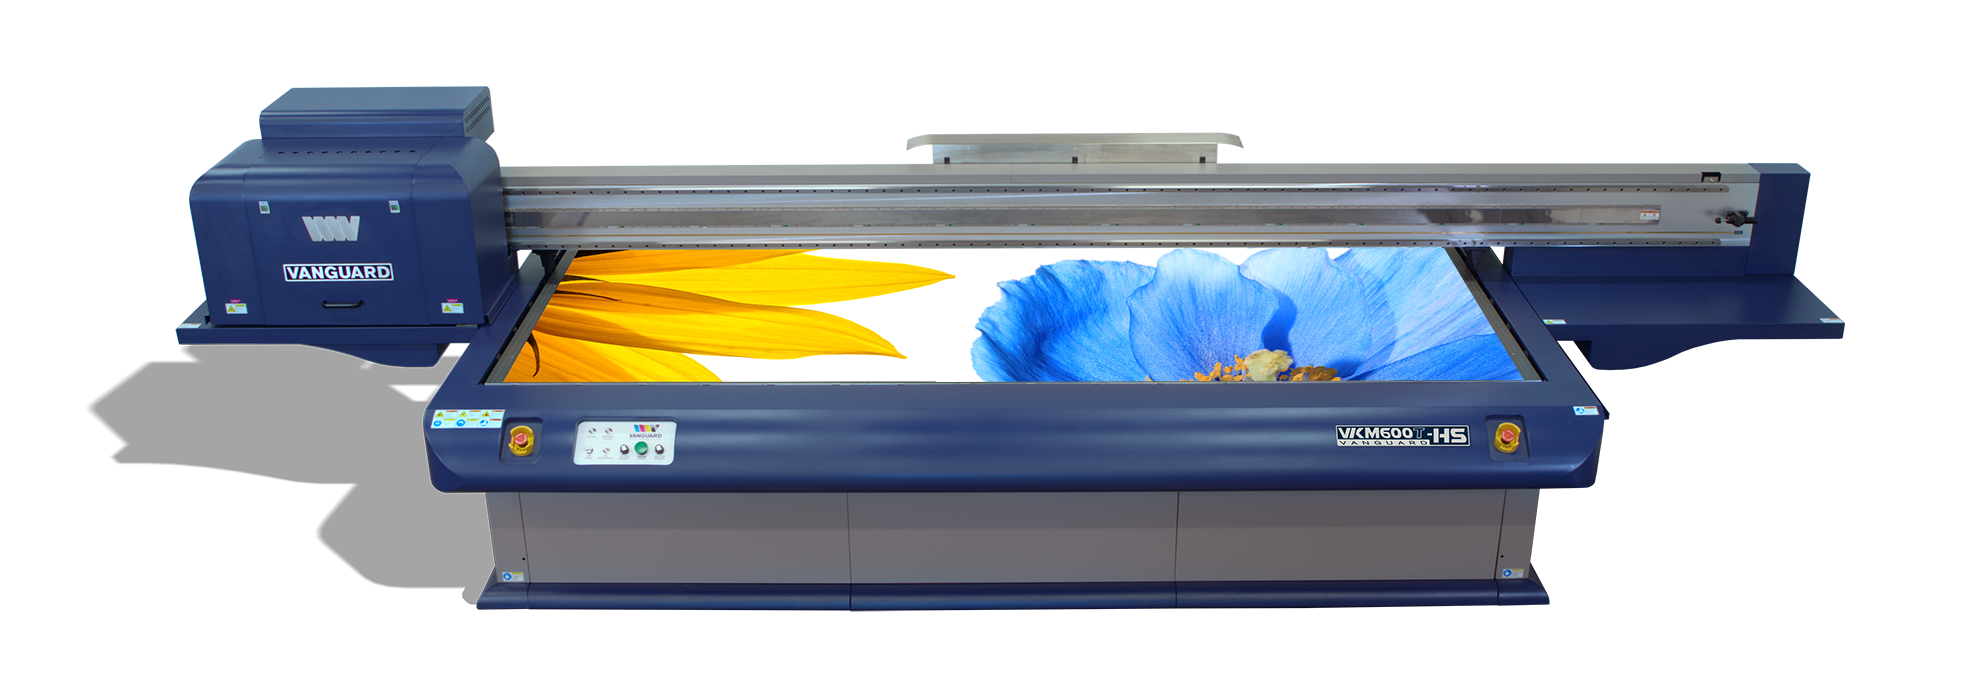 Vanguard VKM600T-HS Flatbed LED UV Printer